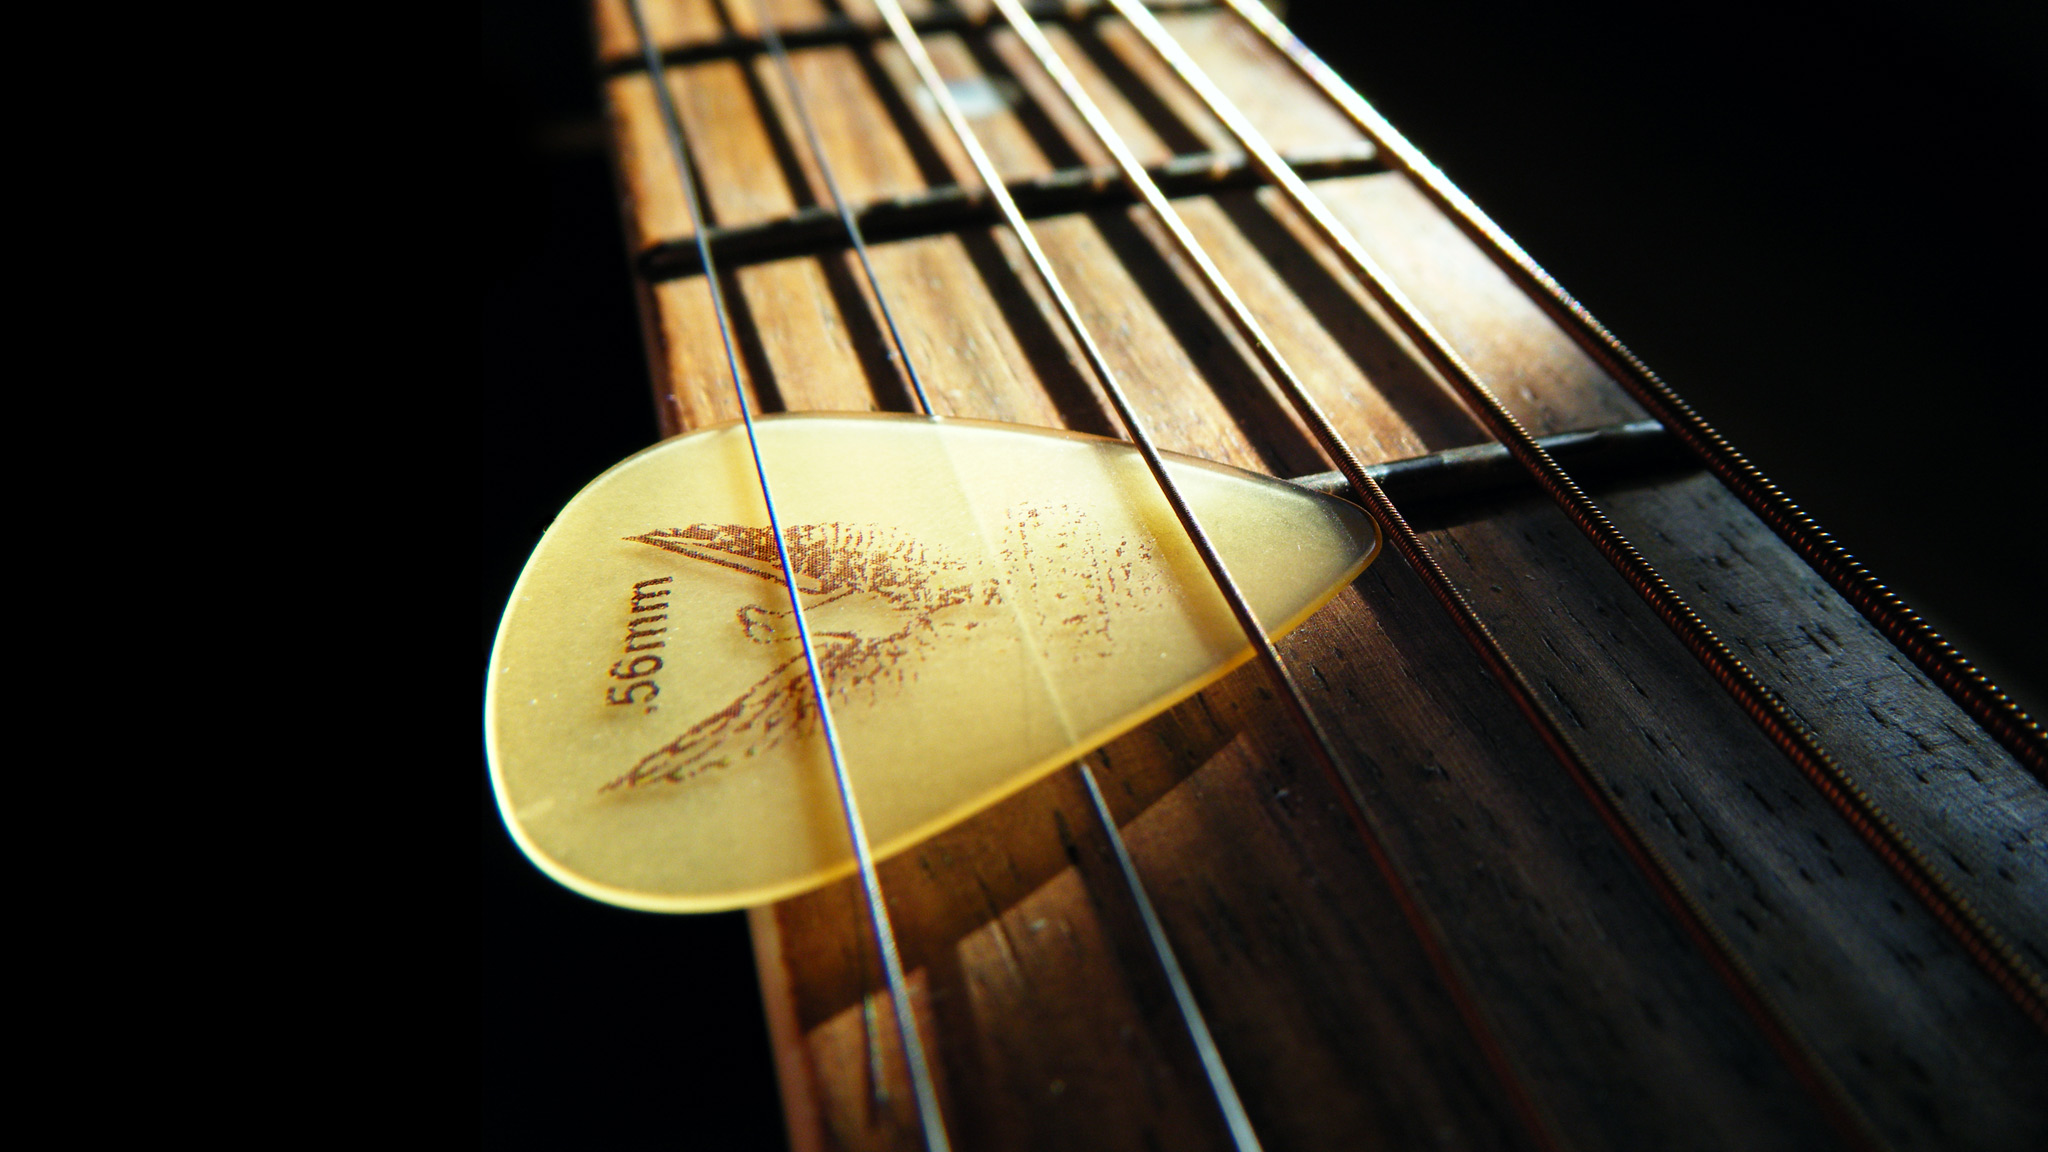 49 guitars hd wallpapers backgrounds for free bsnscb